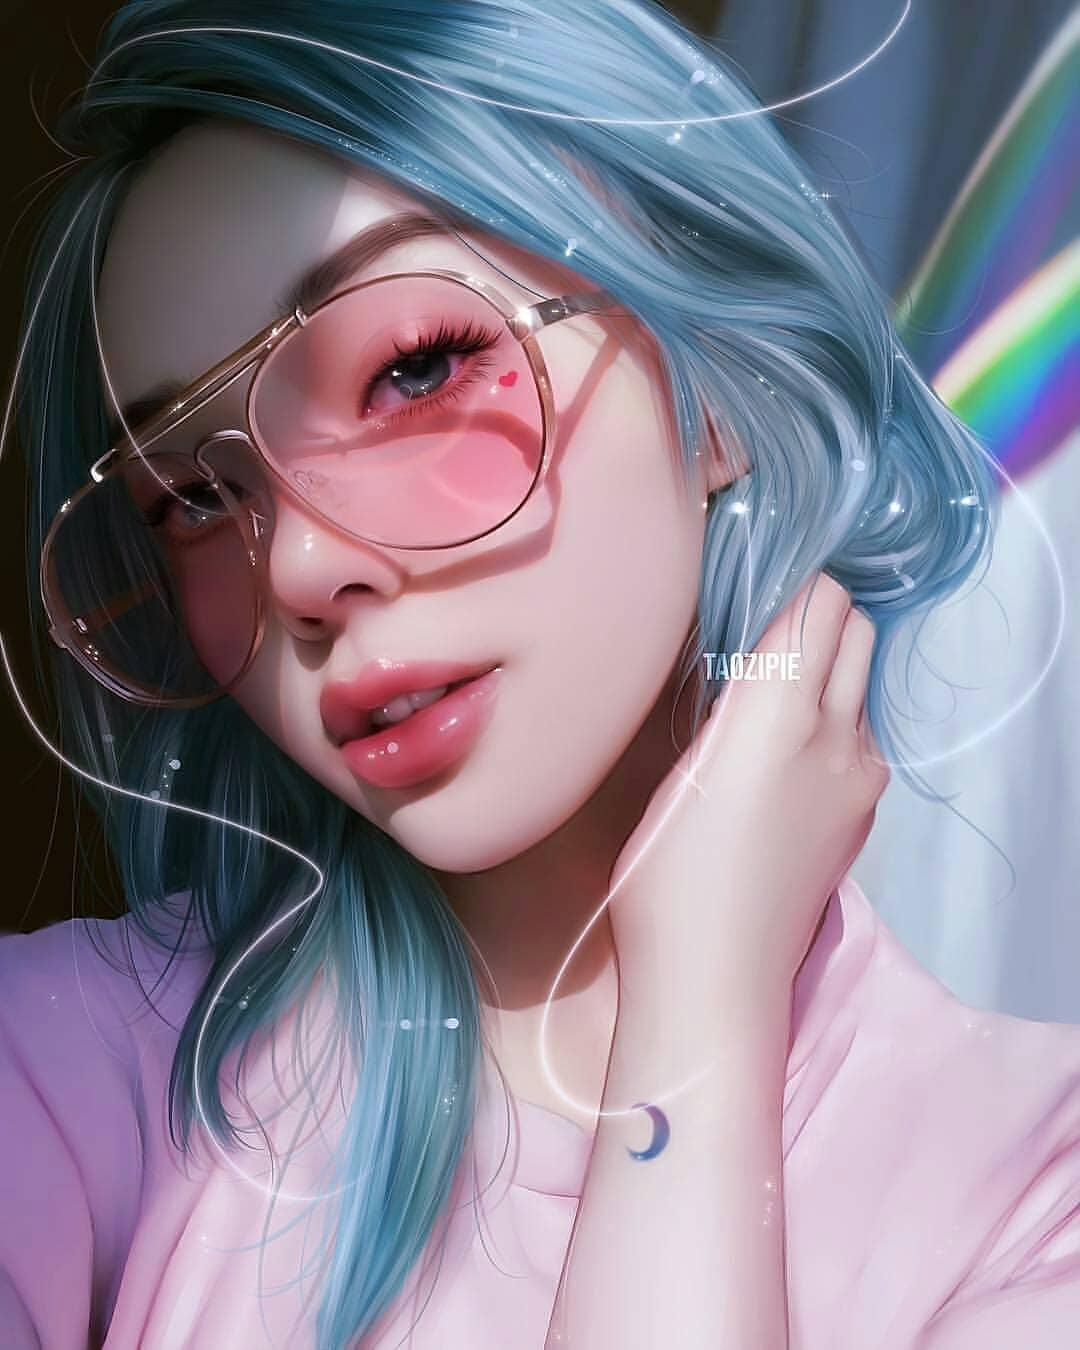 Cute Girls Wallpapers 2019 For Android Apk Download Anime Realistic Digital Art 2852059 Hd Wallpaper Backgrounds Download